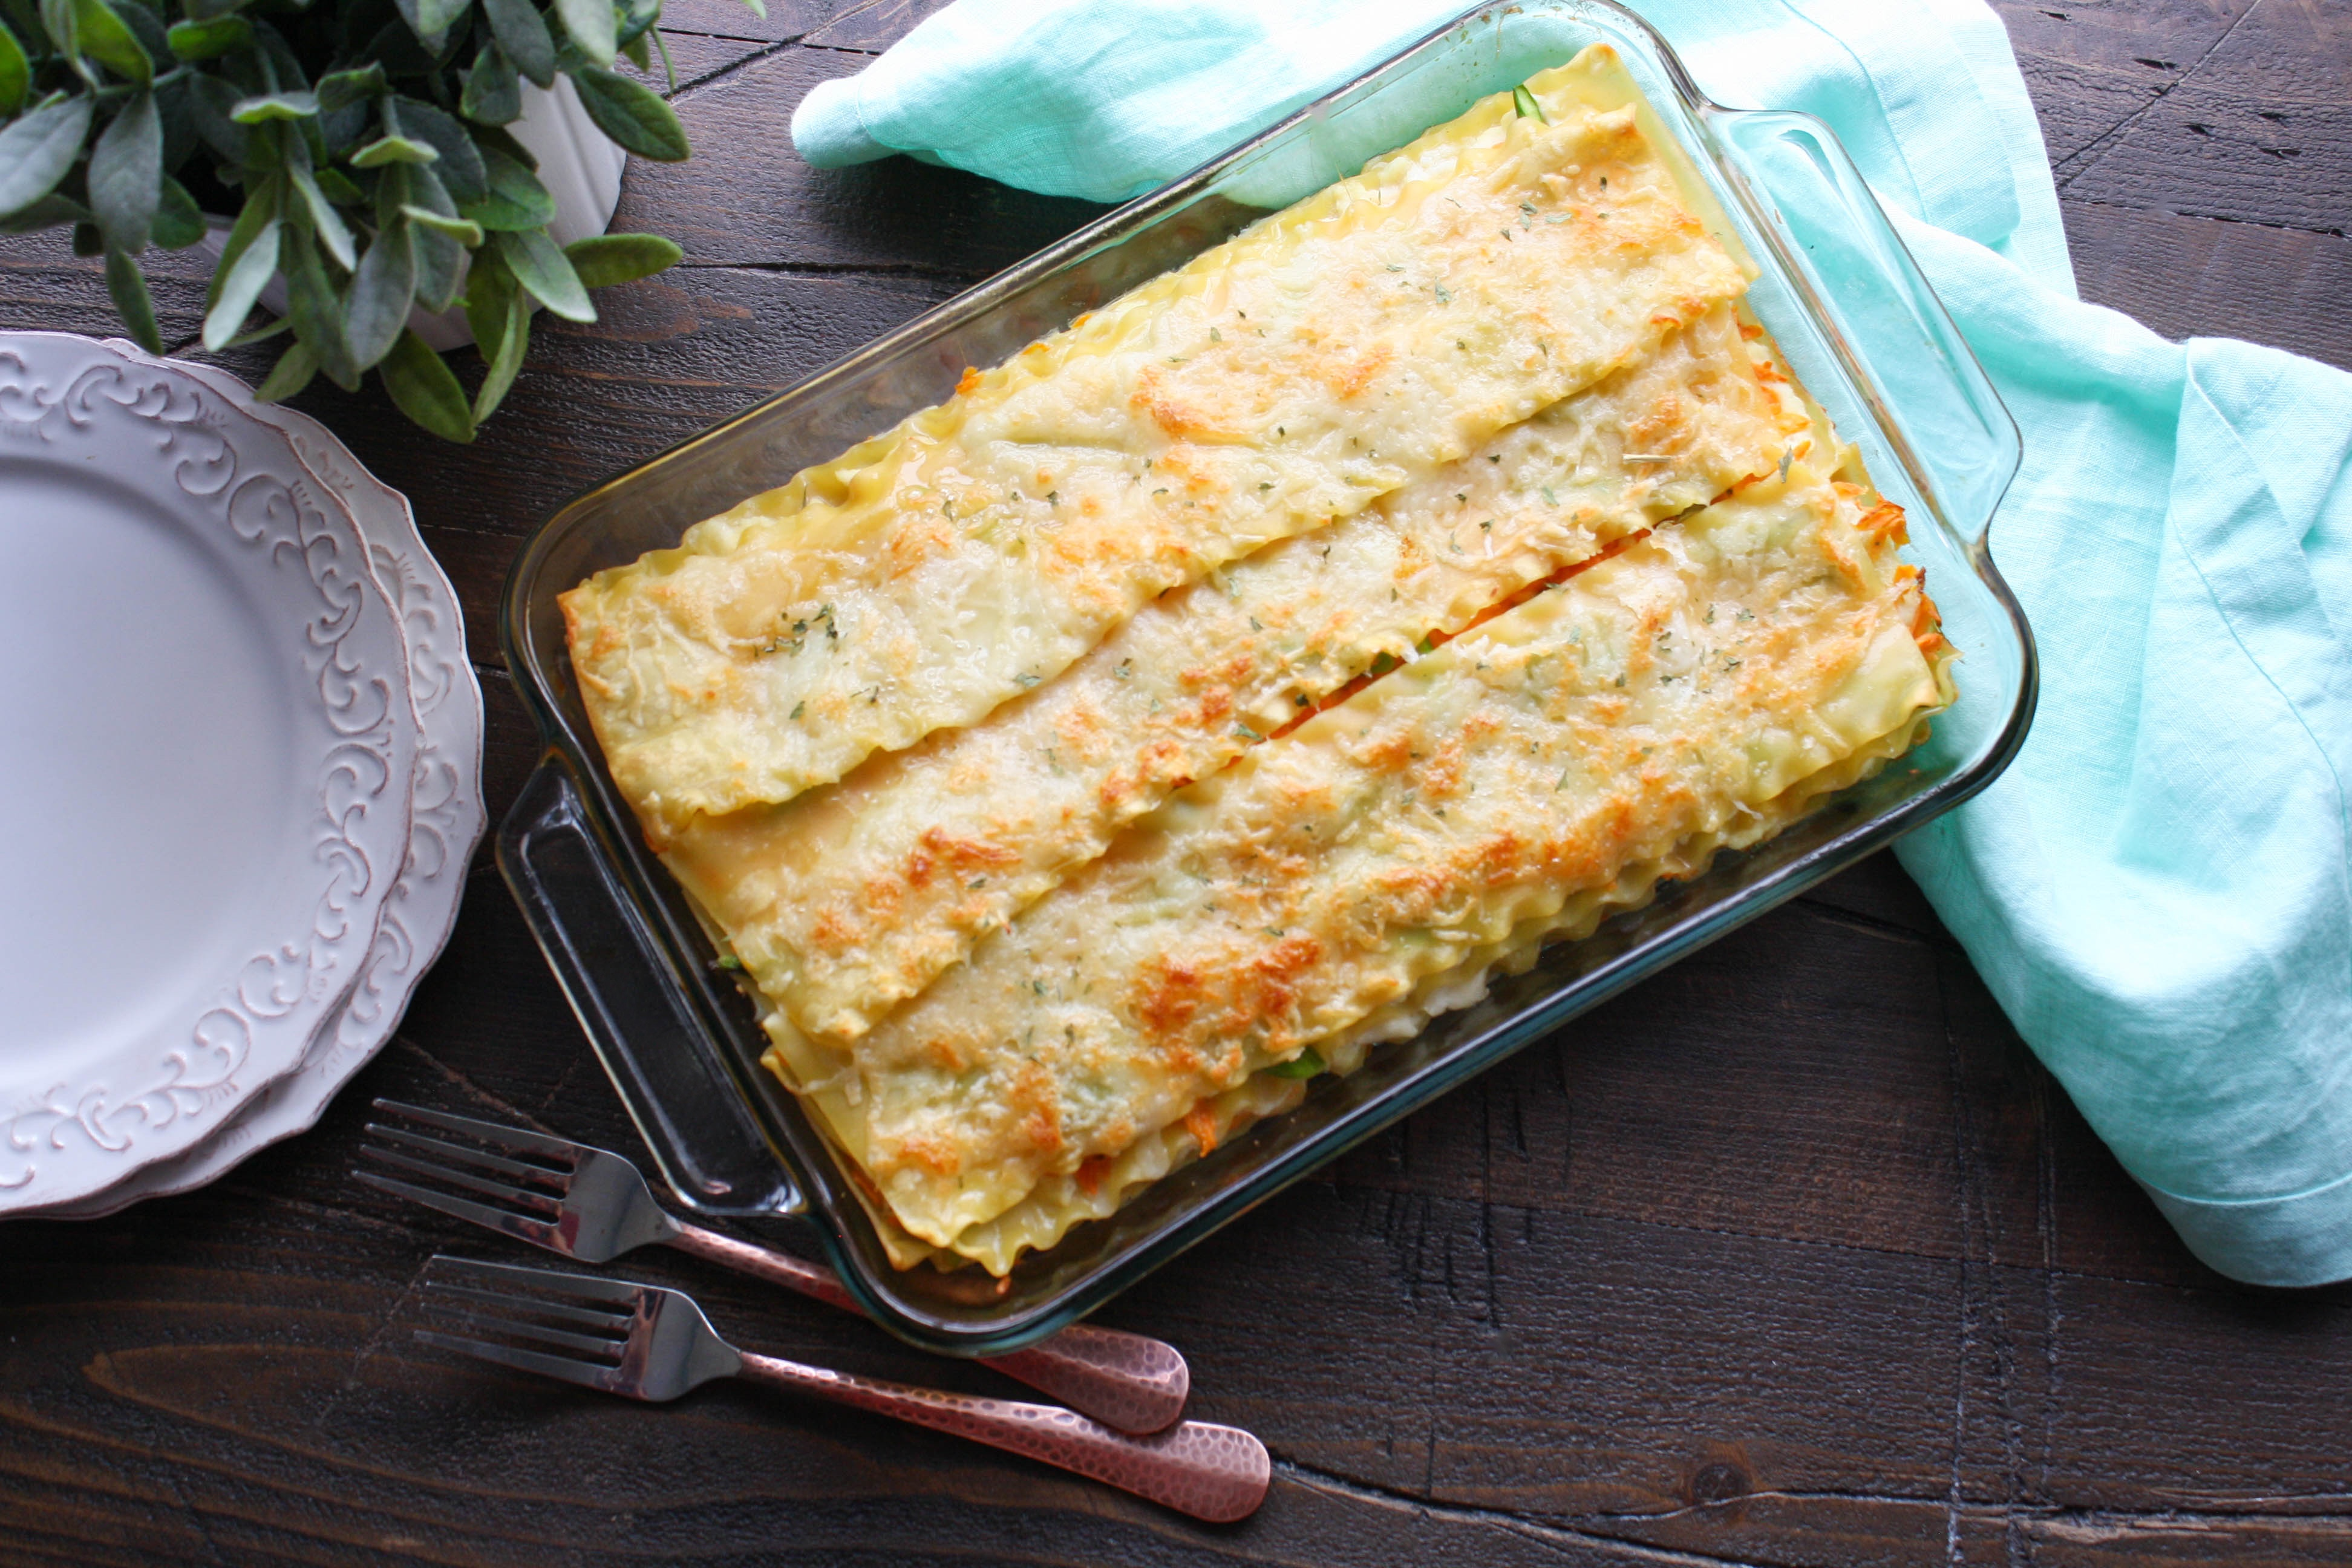 Asparagus and Sweet Potato Lasagna is a fabulous meal everyone will love. Asparagus and Sweet Potato Lasagna is creamy and colorful, and super tasty!